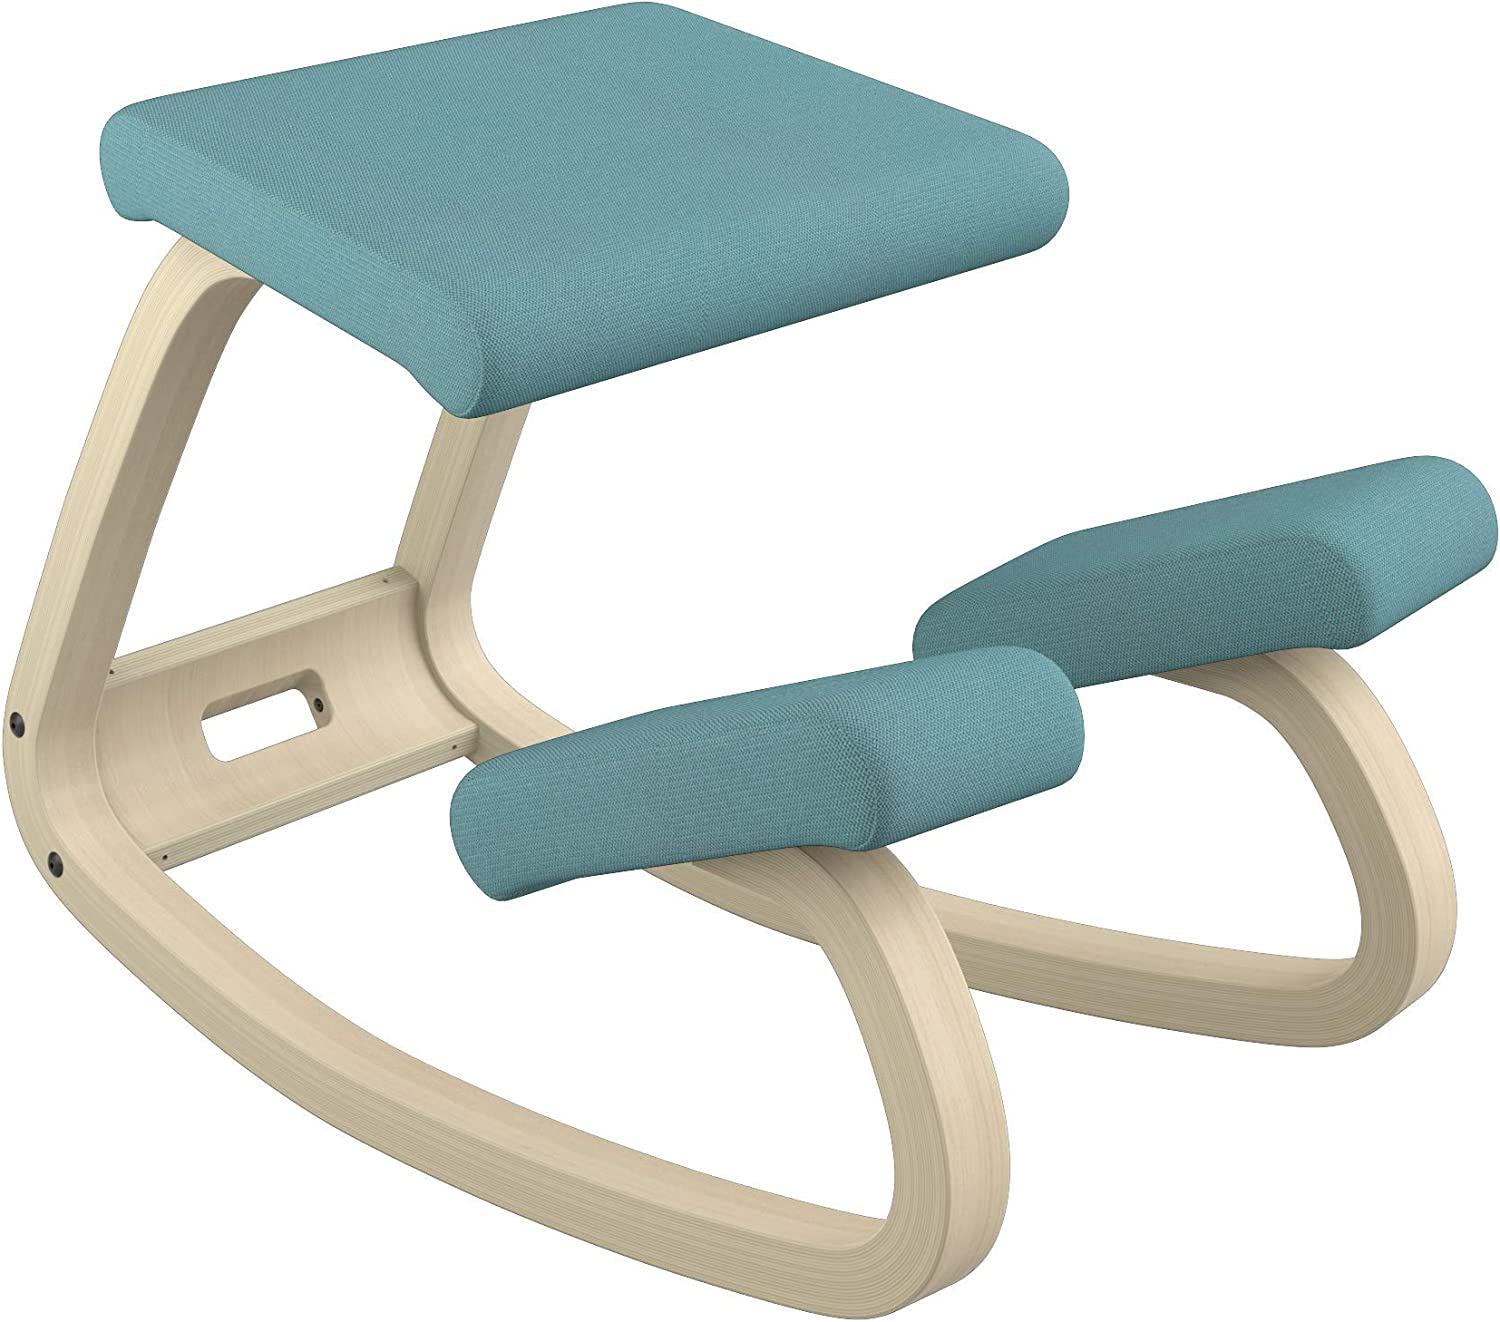 Varier Variable Balans Original Kneeling Chair Designed by Peter Opsvik (Turquoise Revive Fabric with Natural Ash Base)